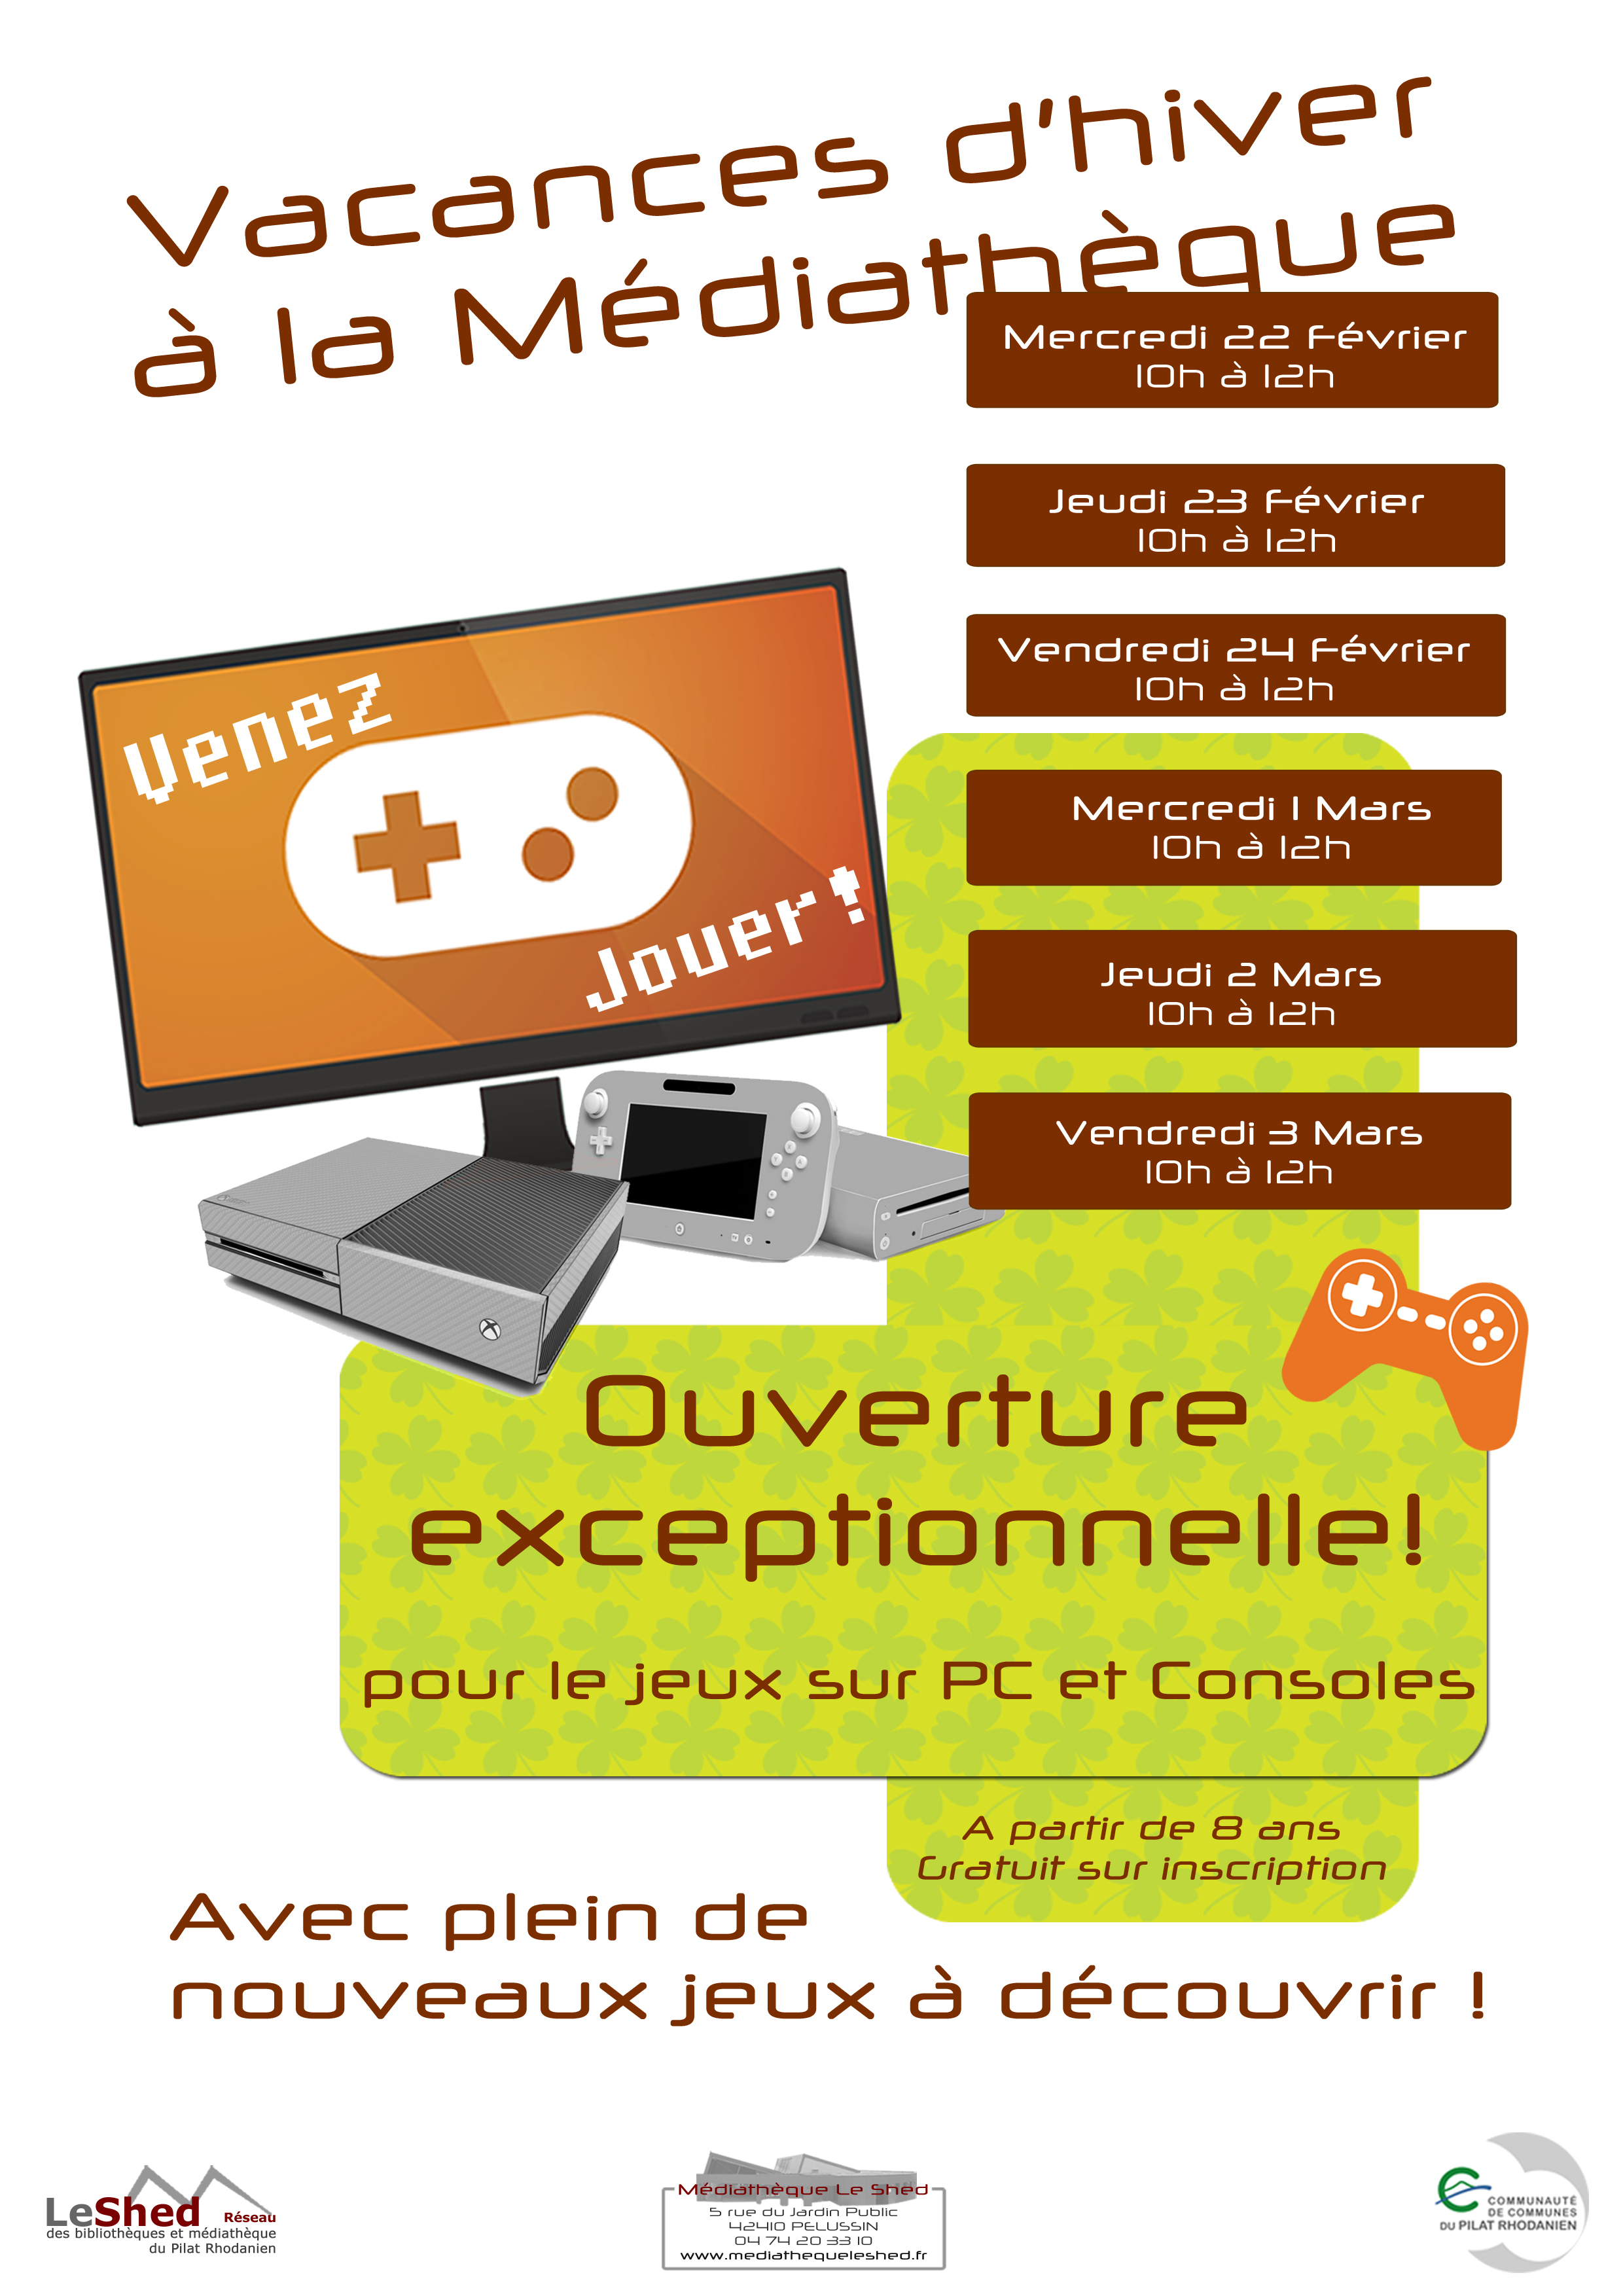 ateliers-jeux-video-vacancesdhiver